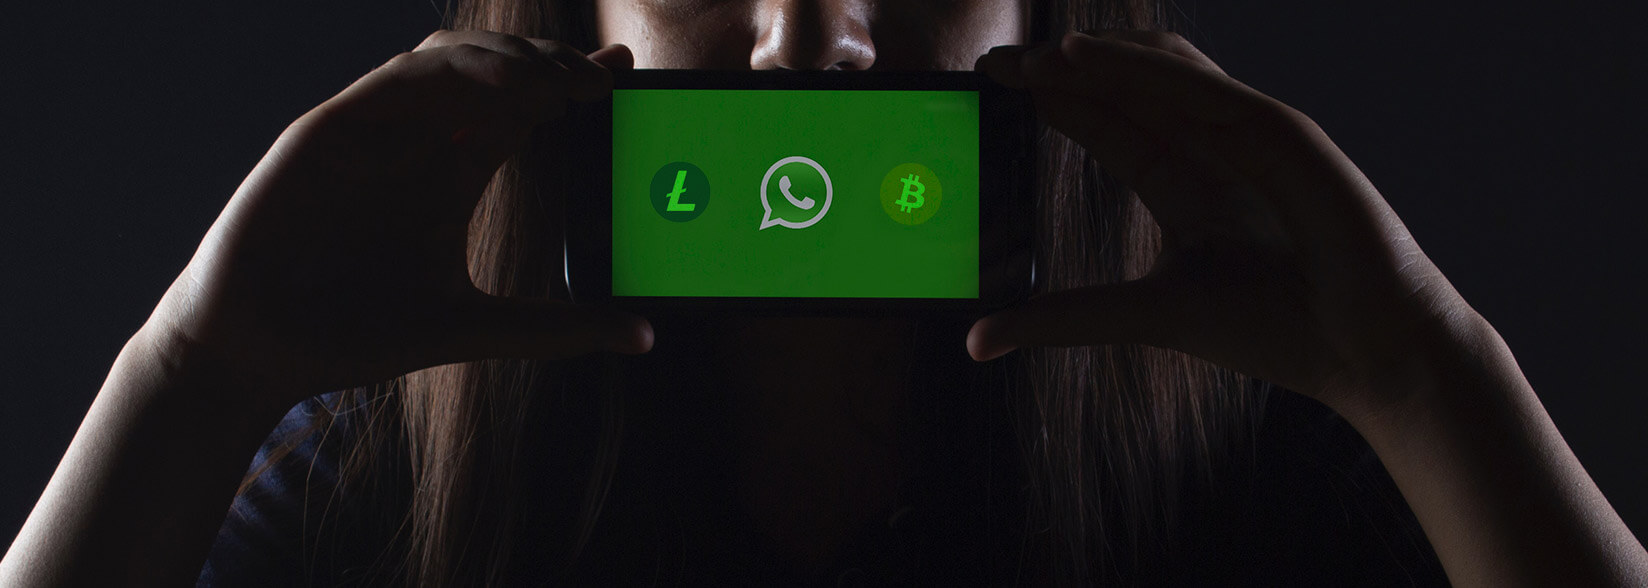 Send Bitcoin And Litecoin Transactions Over Whatsapp Cryptoslate